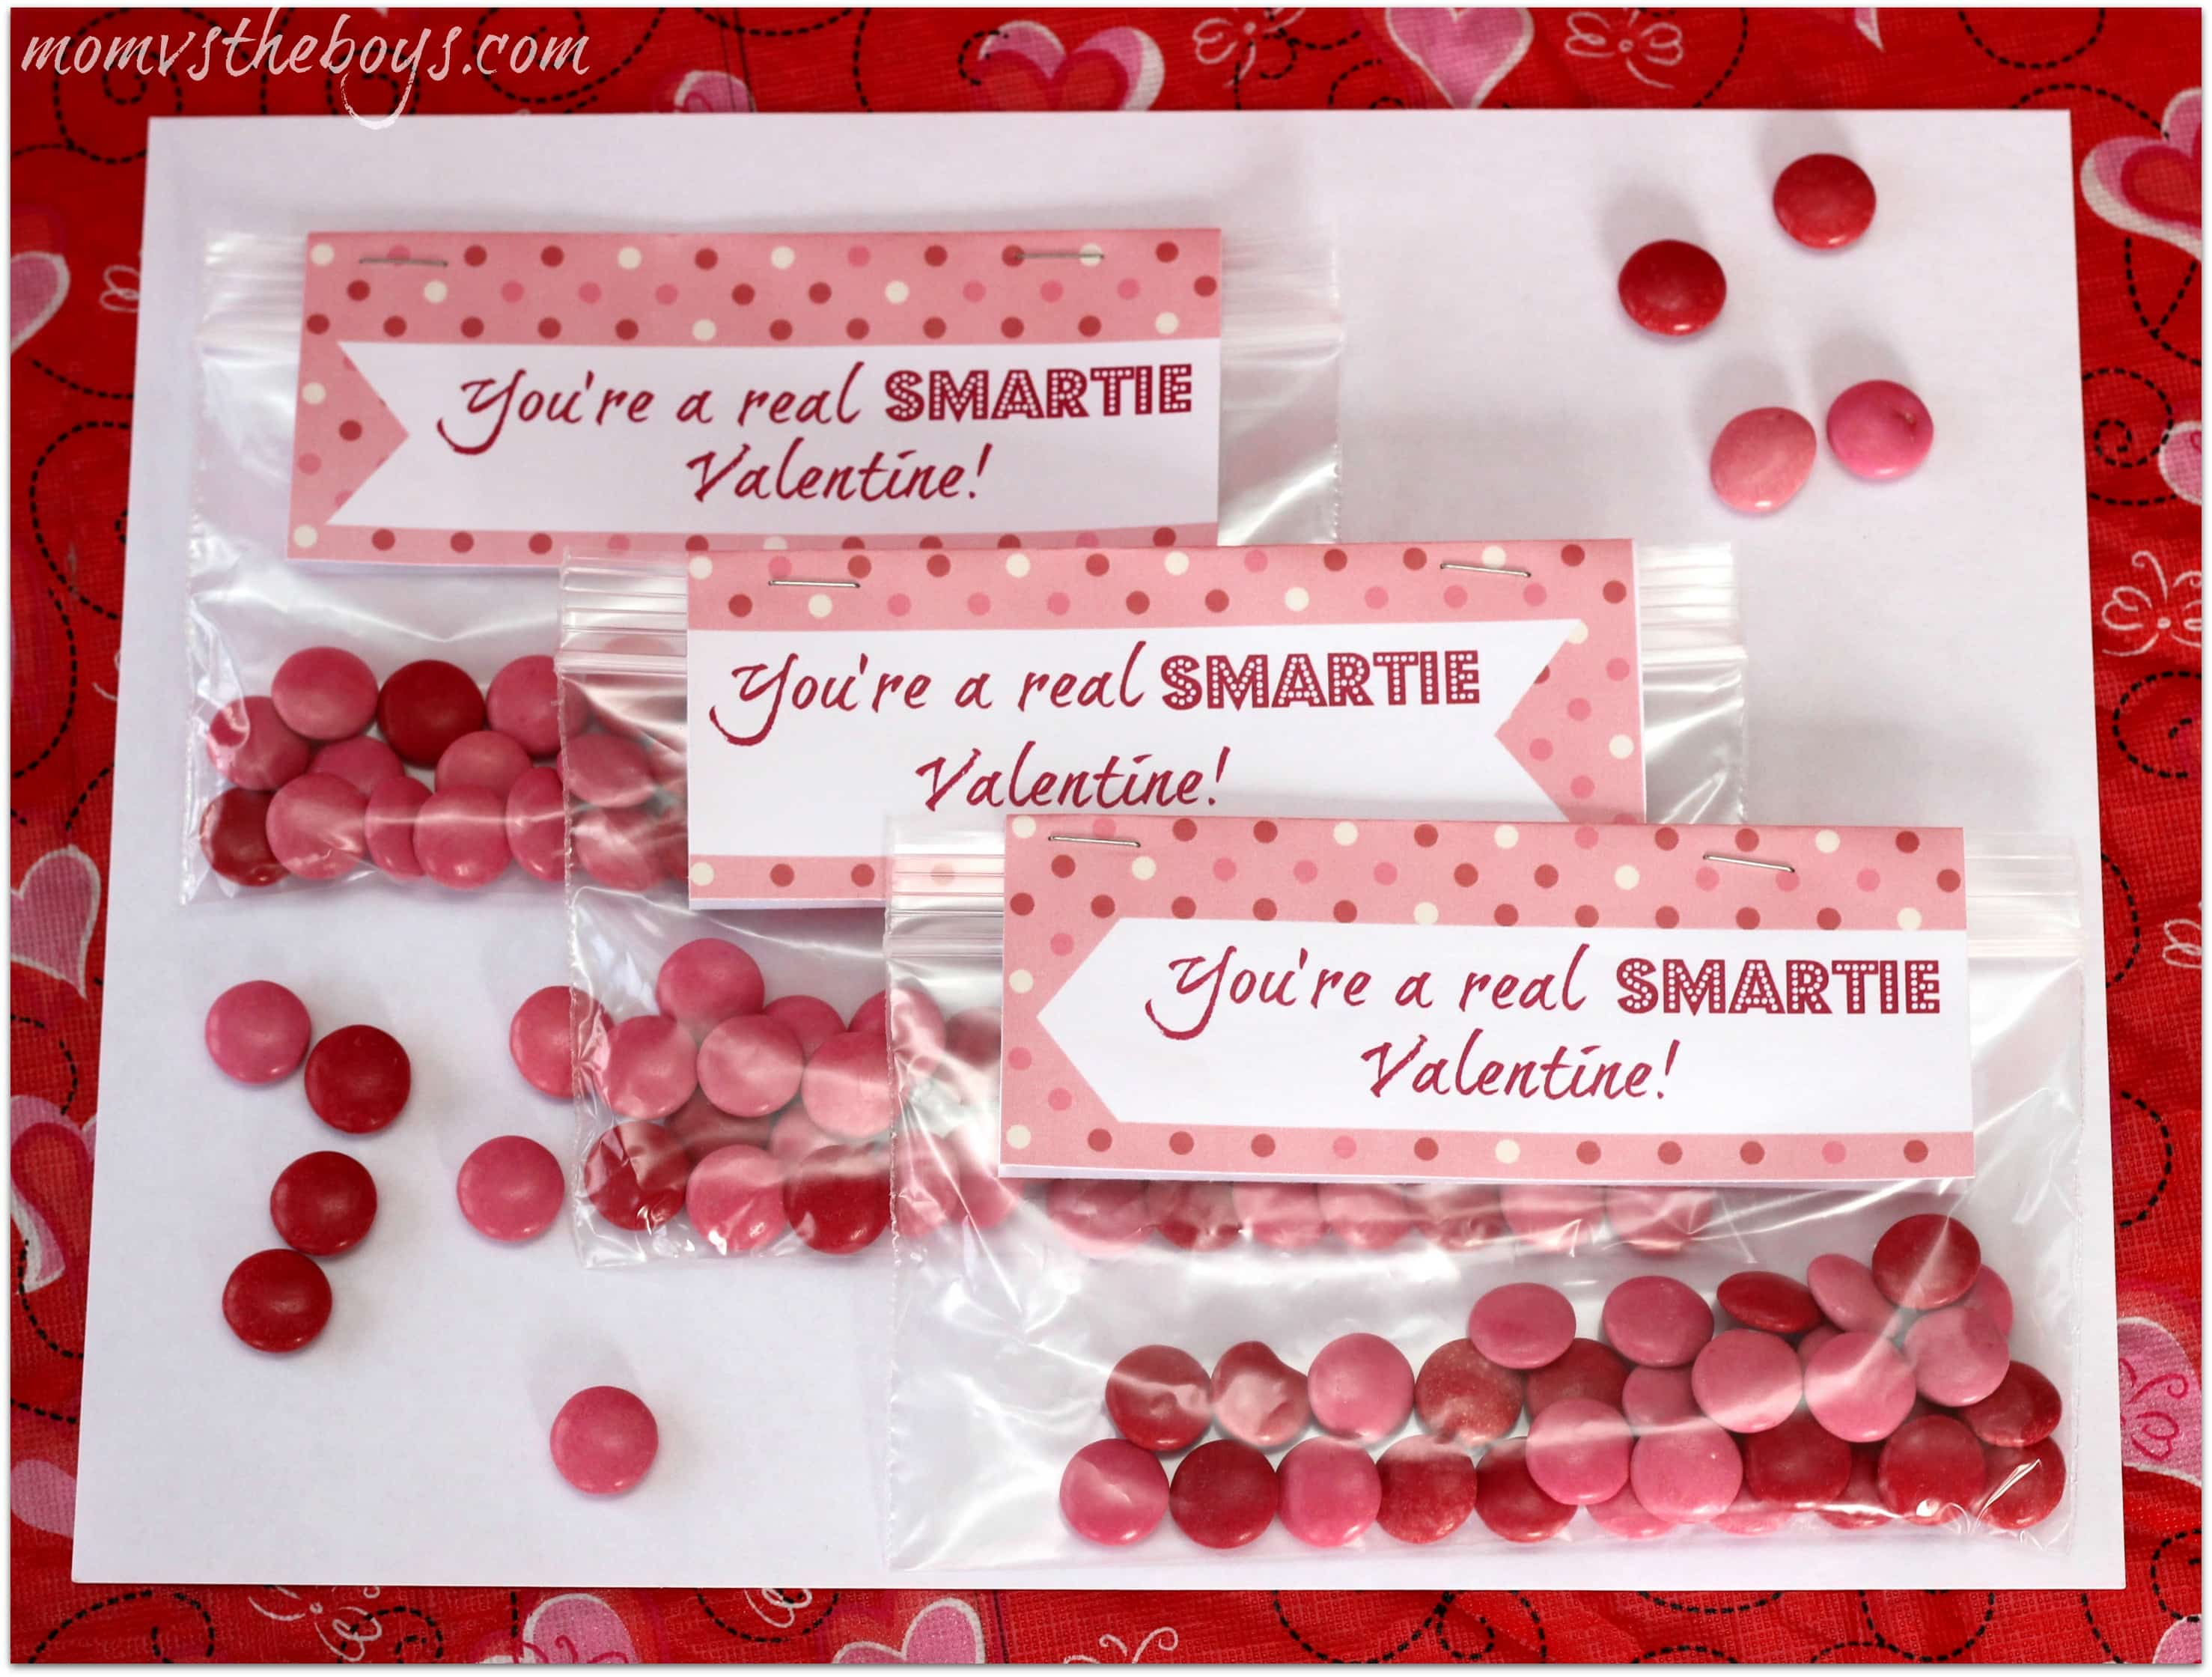 smartie valentine printable. Smarties Valentine Printable   Mom vs the Boys